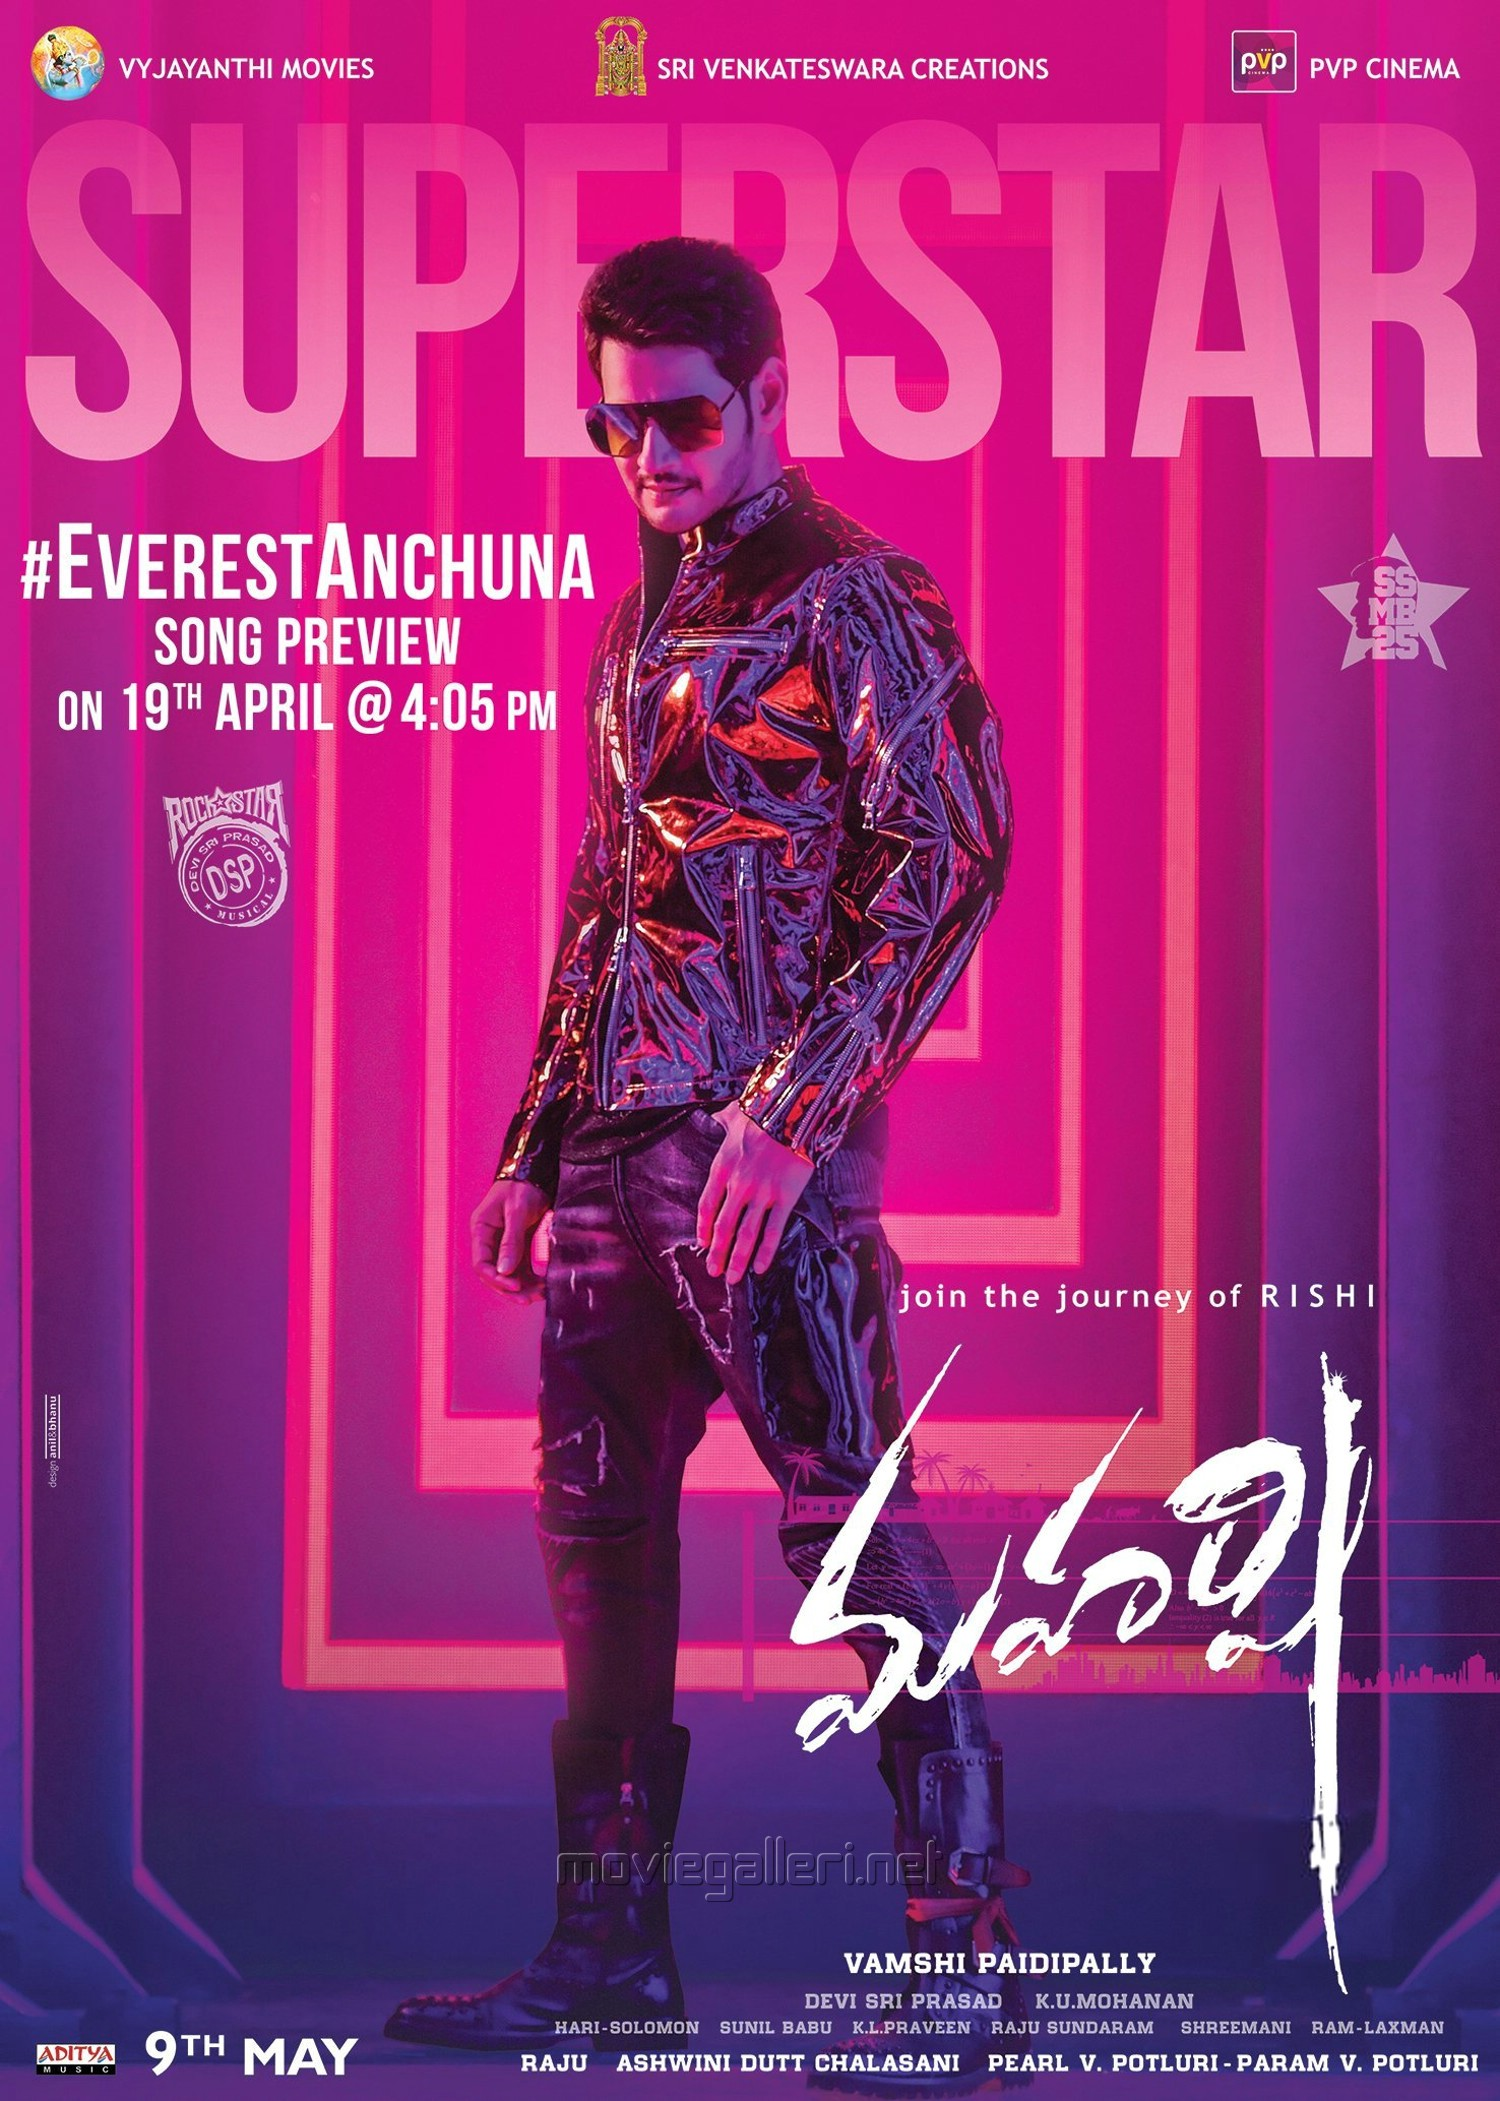 Mahesh Babu Maharshi Movie Everest Anchuna Song Video Preview From 19th April at 4 05 PM Poster HD